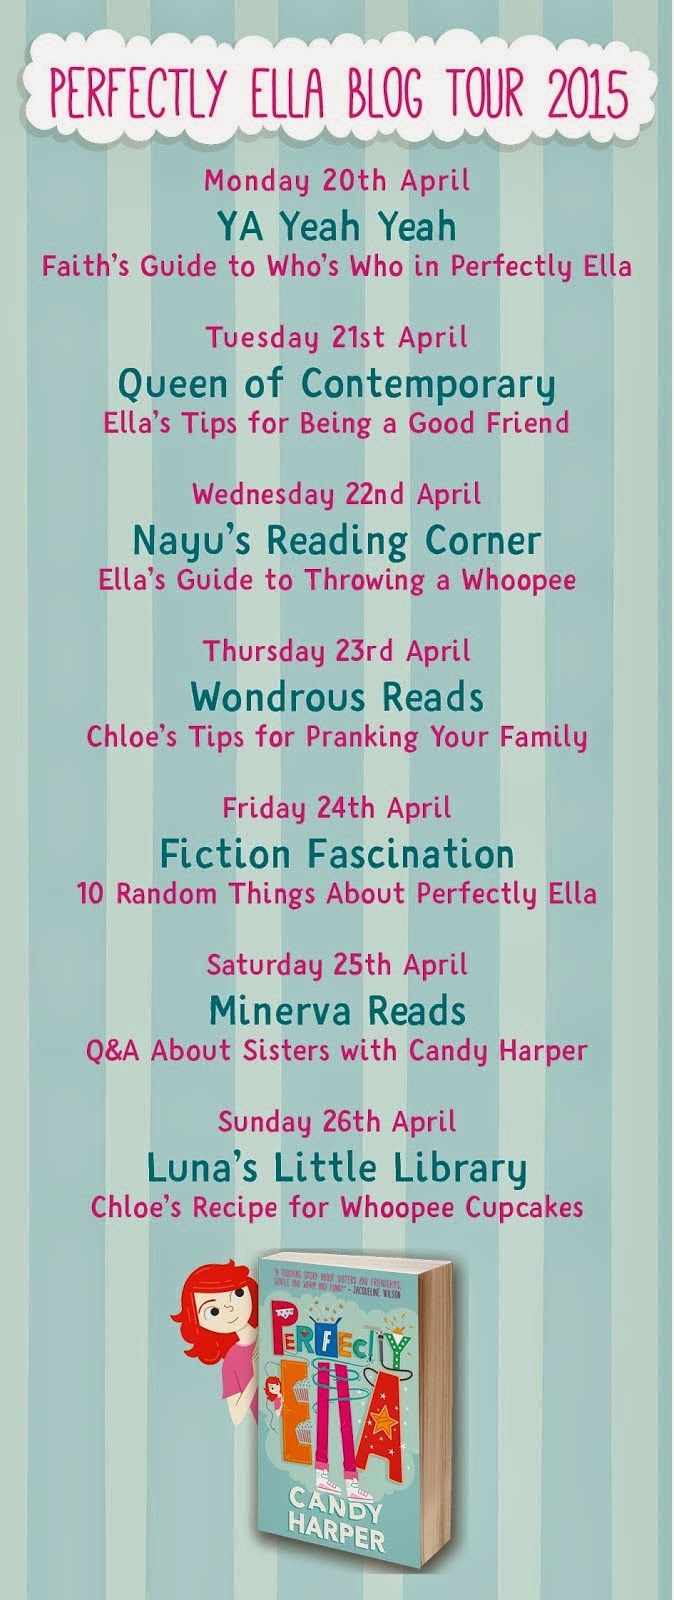 Perfectly Ella Blog Tour